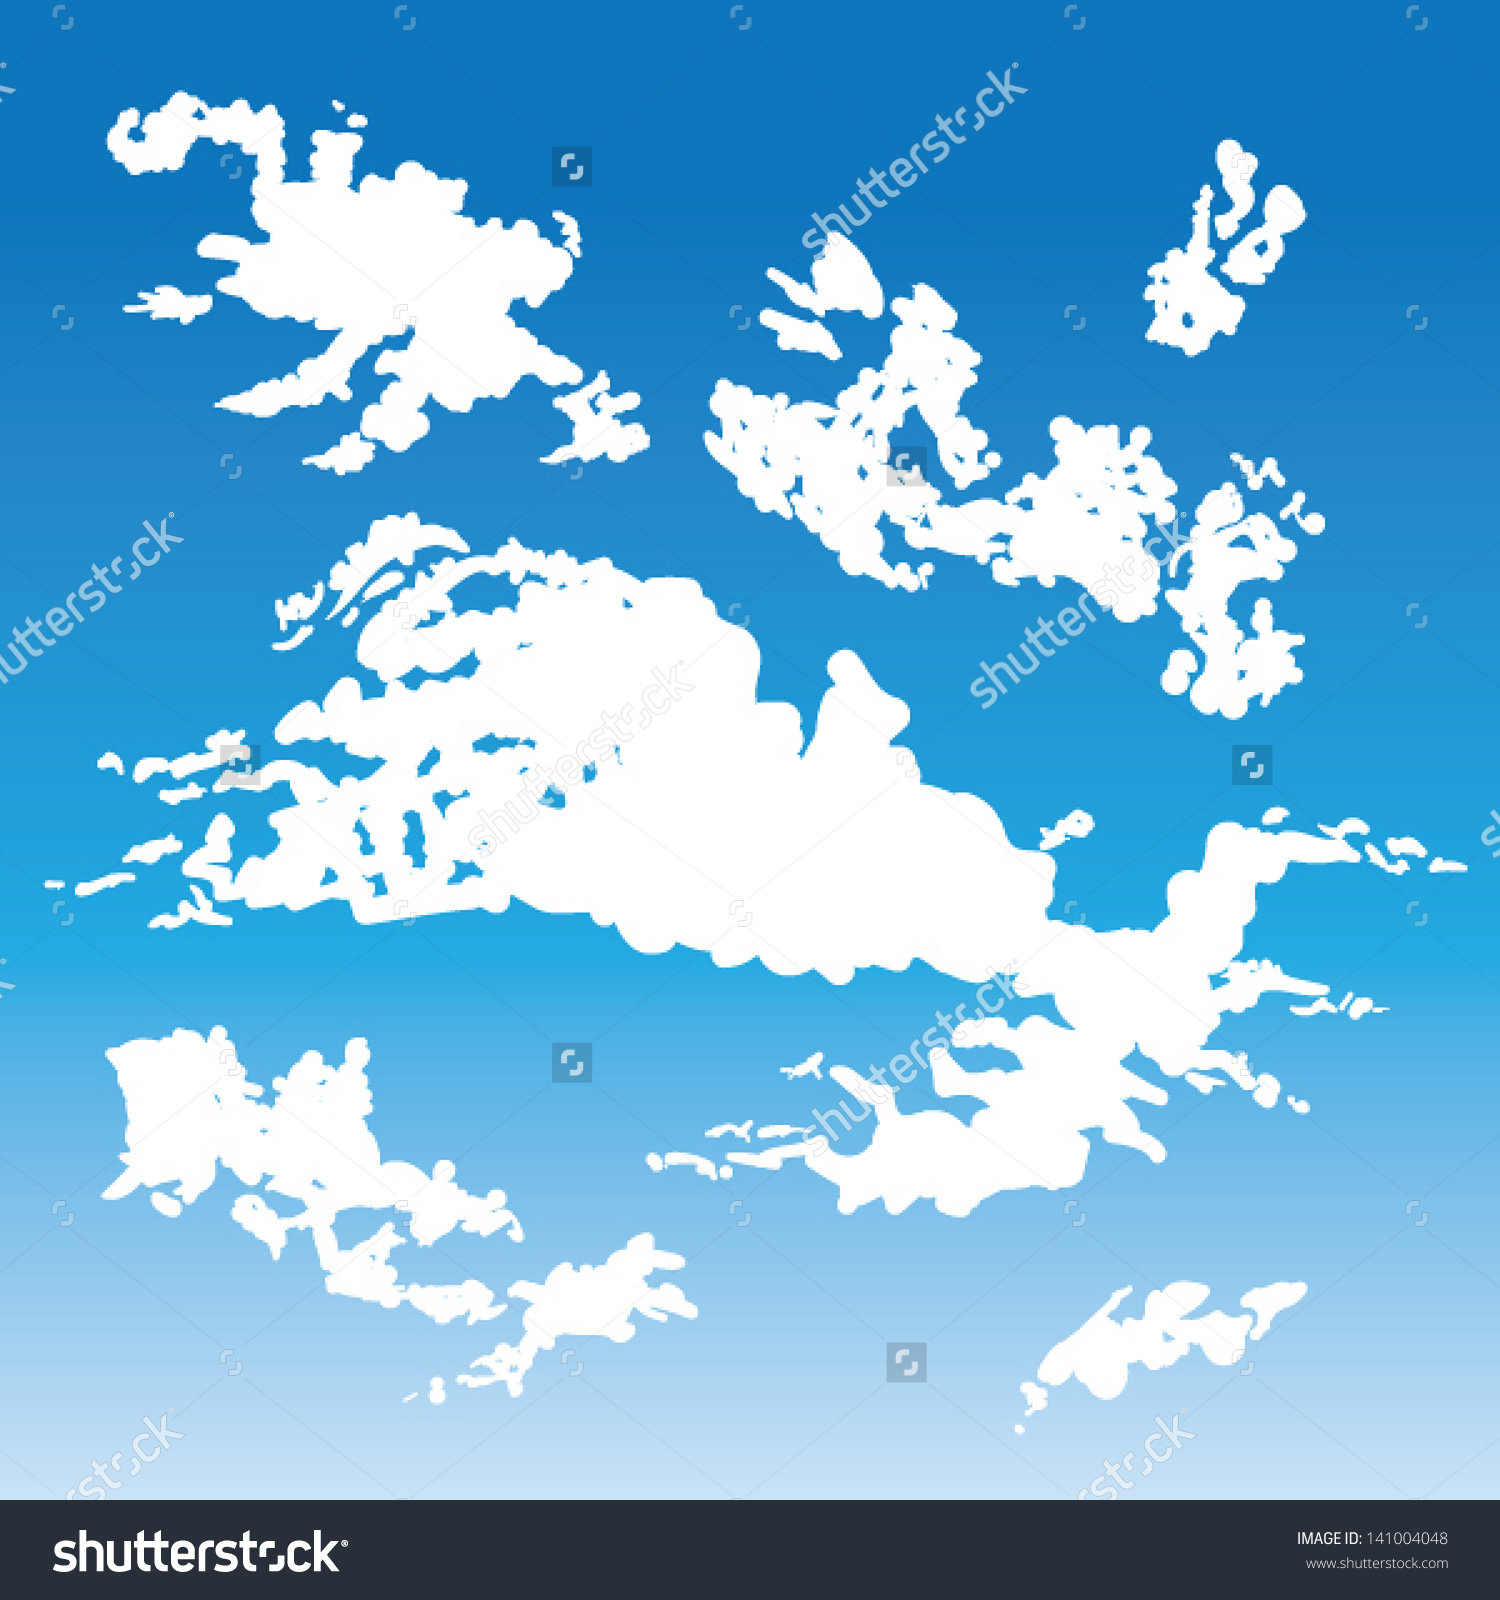 Clipart cirrus clouds.